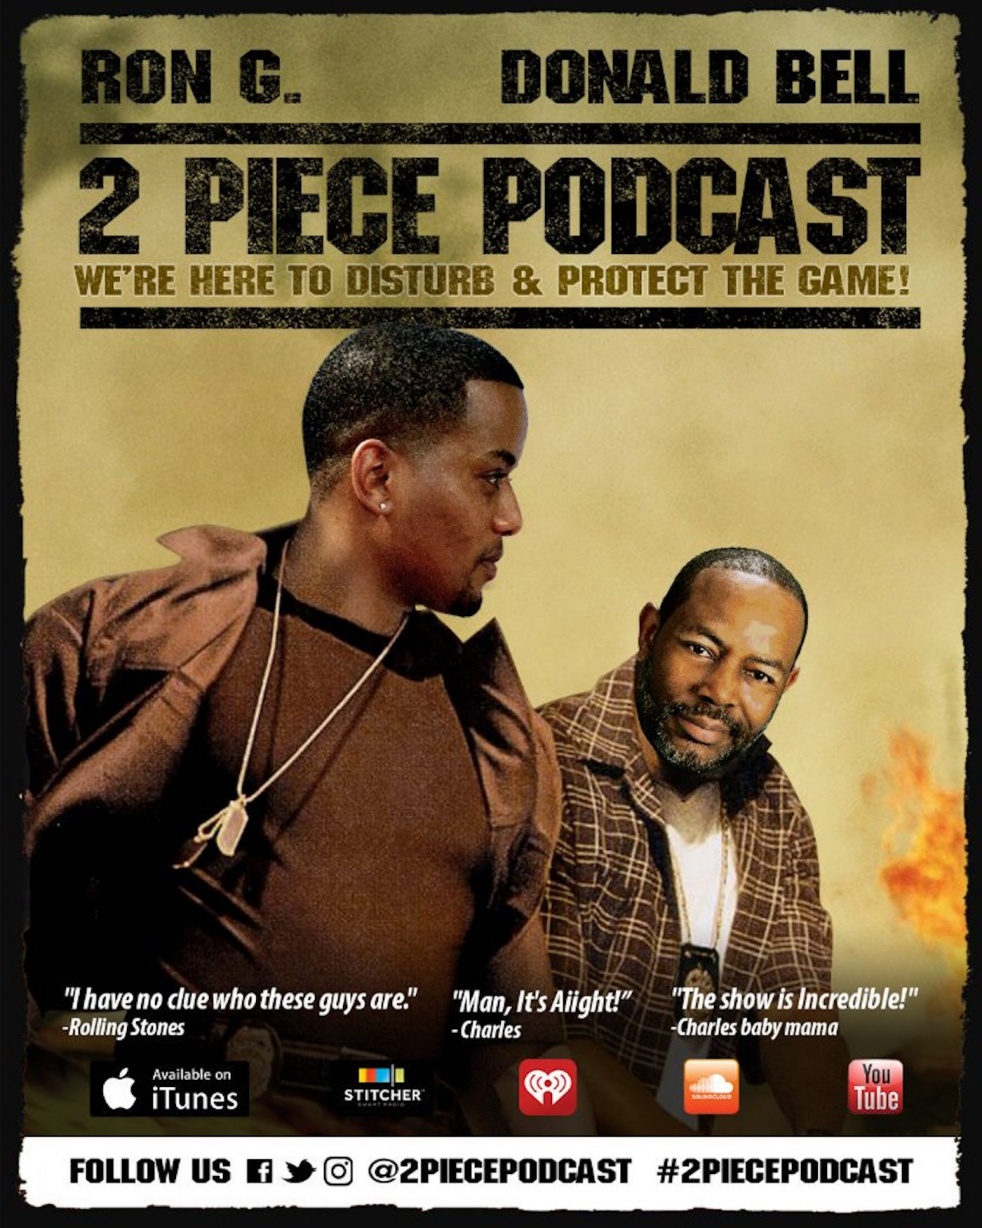 2 Piece Podcast - Cover Image